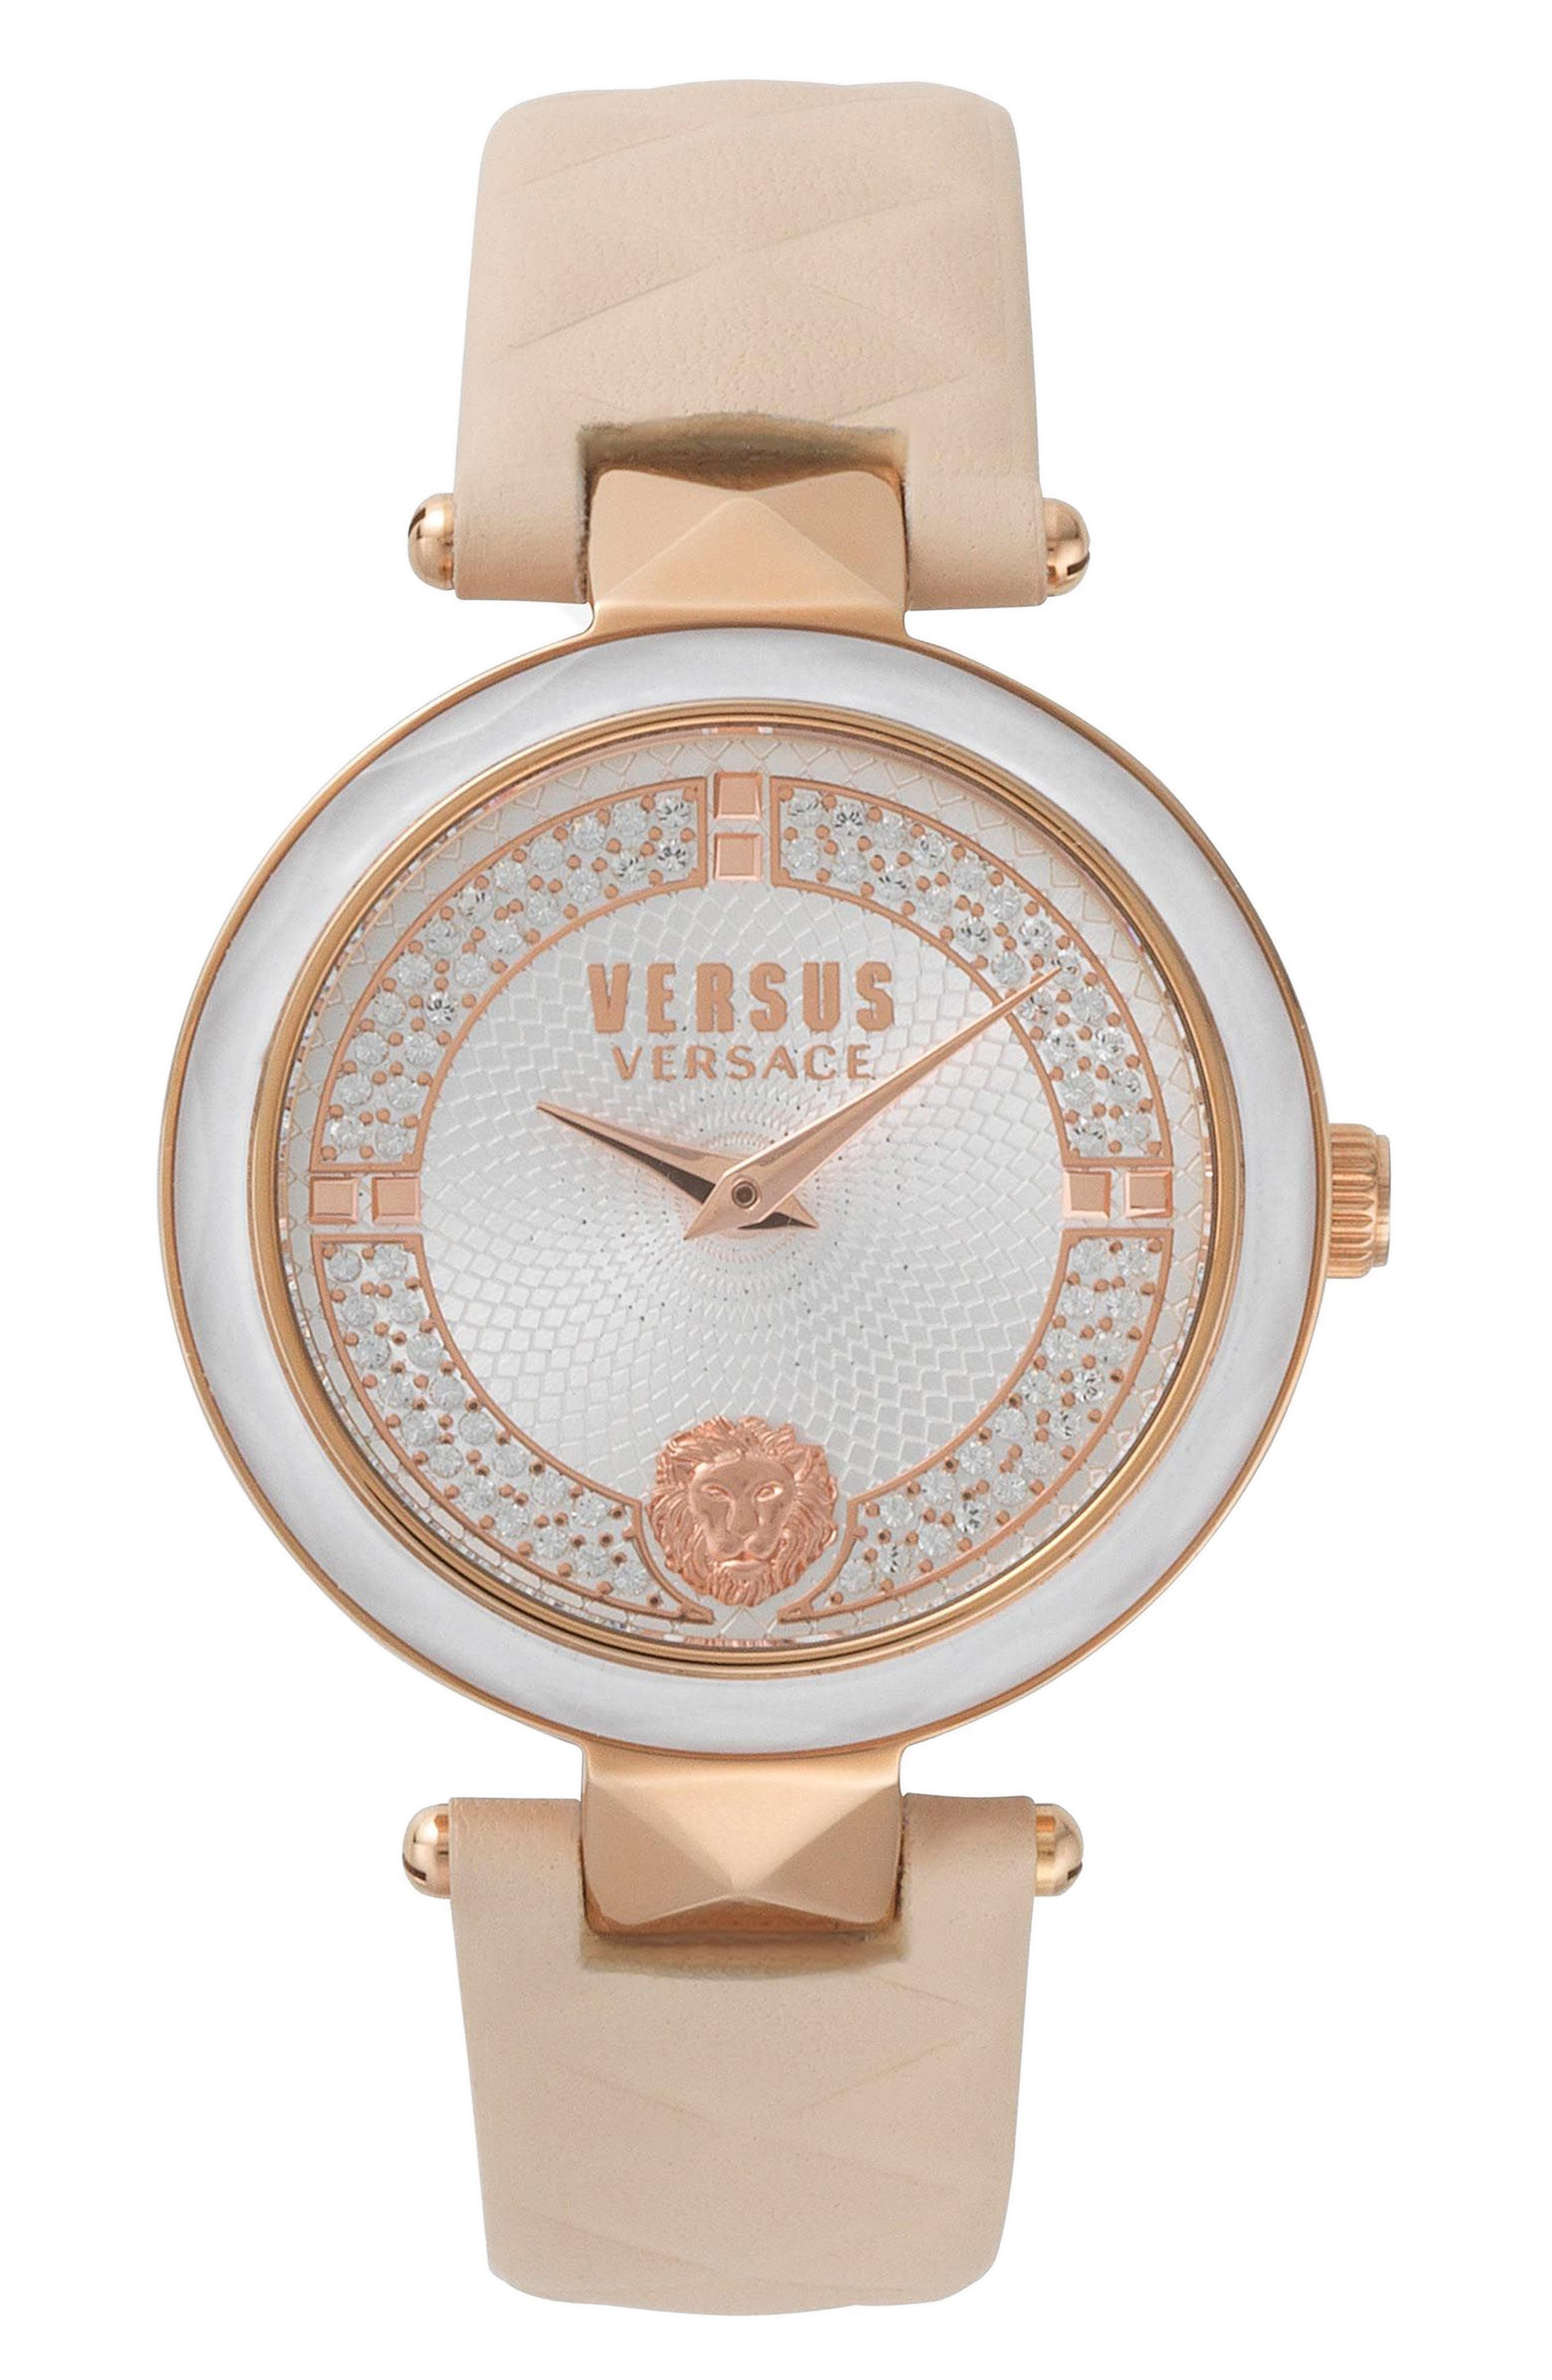 Covent Garden Leather Strap Watch,                         Main,                         color, BEIGE/ WHITE/ ROSE GOLD